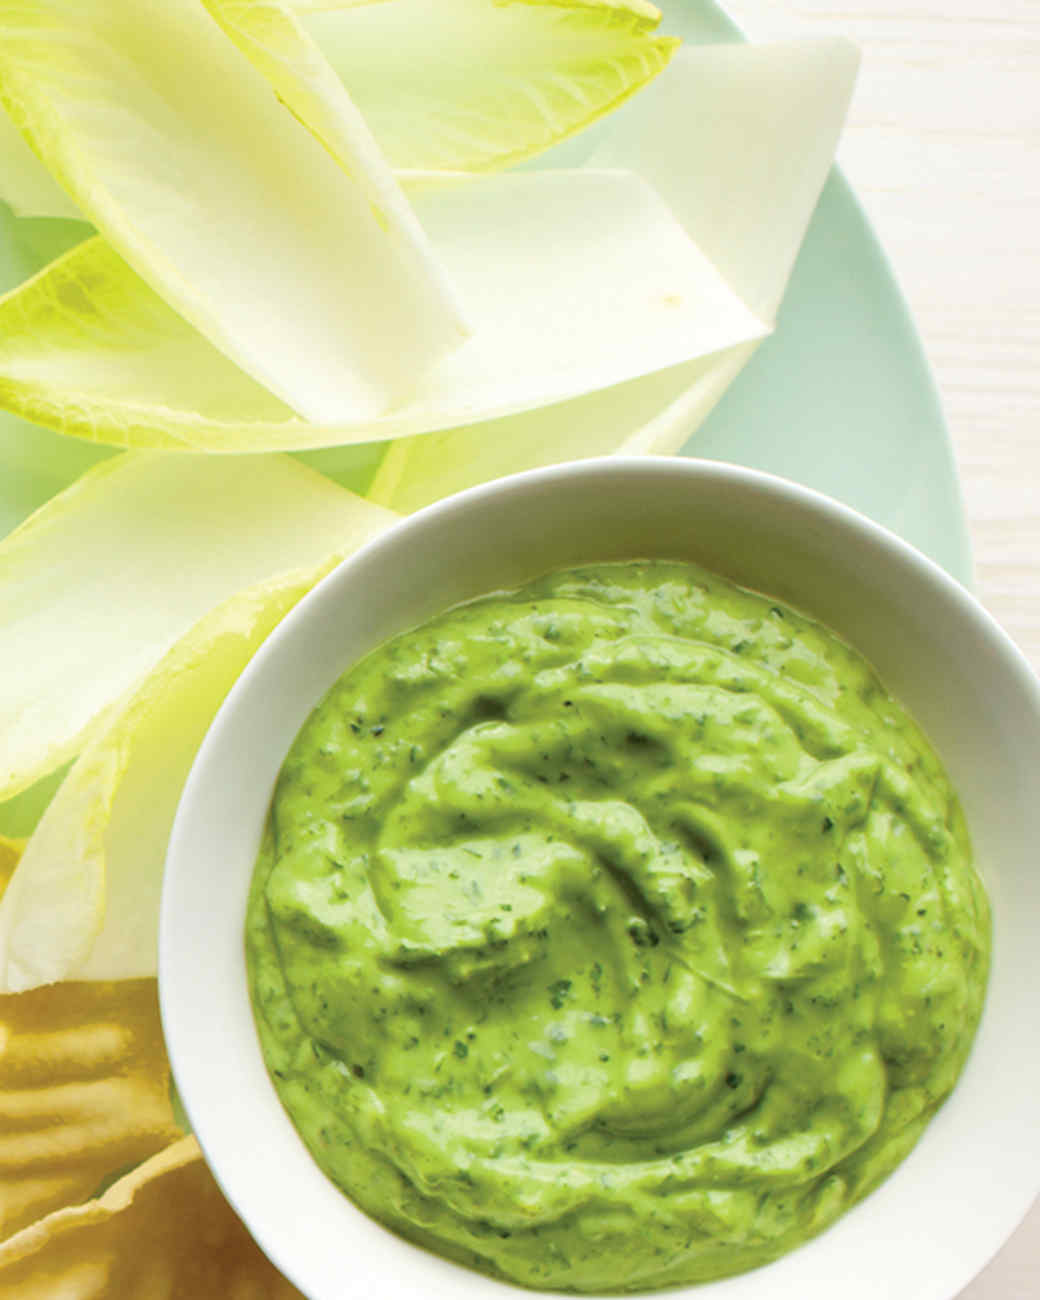 Green Goddess Dip with Endive